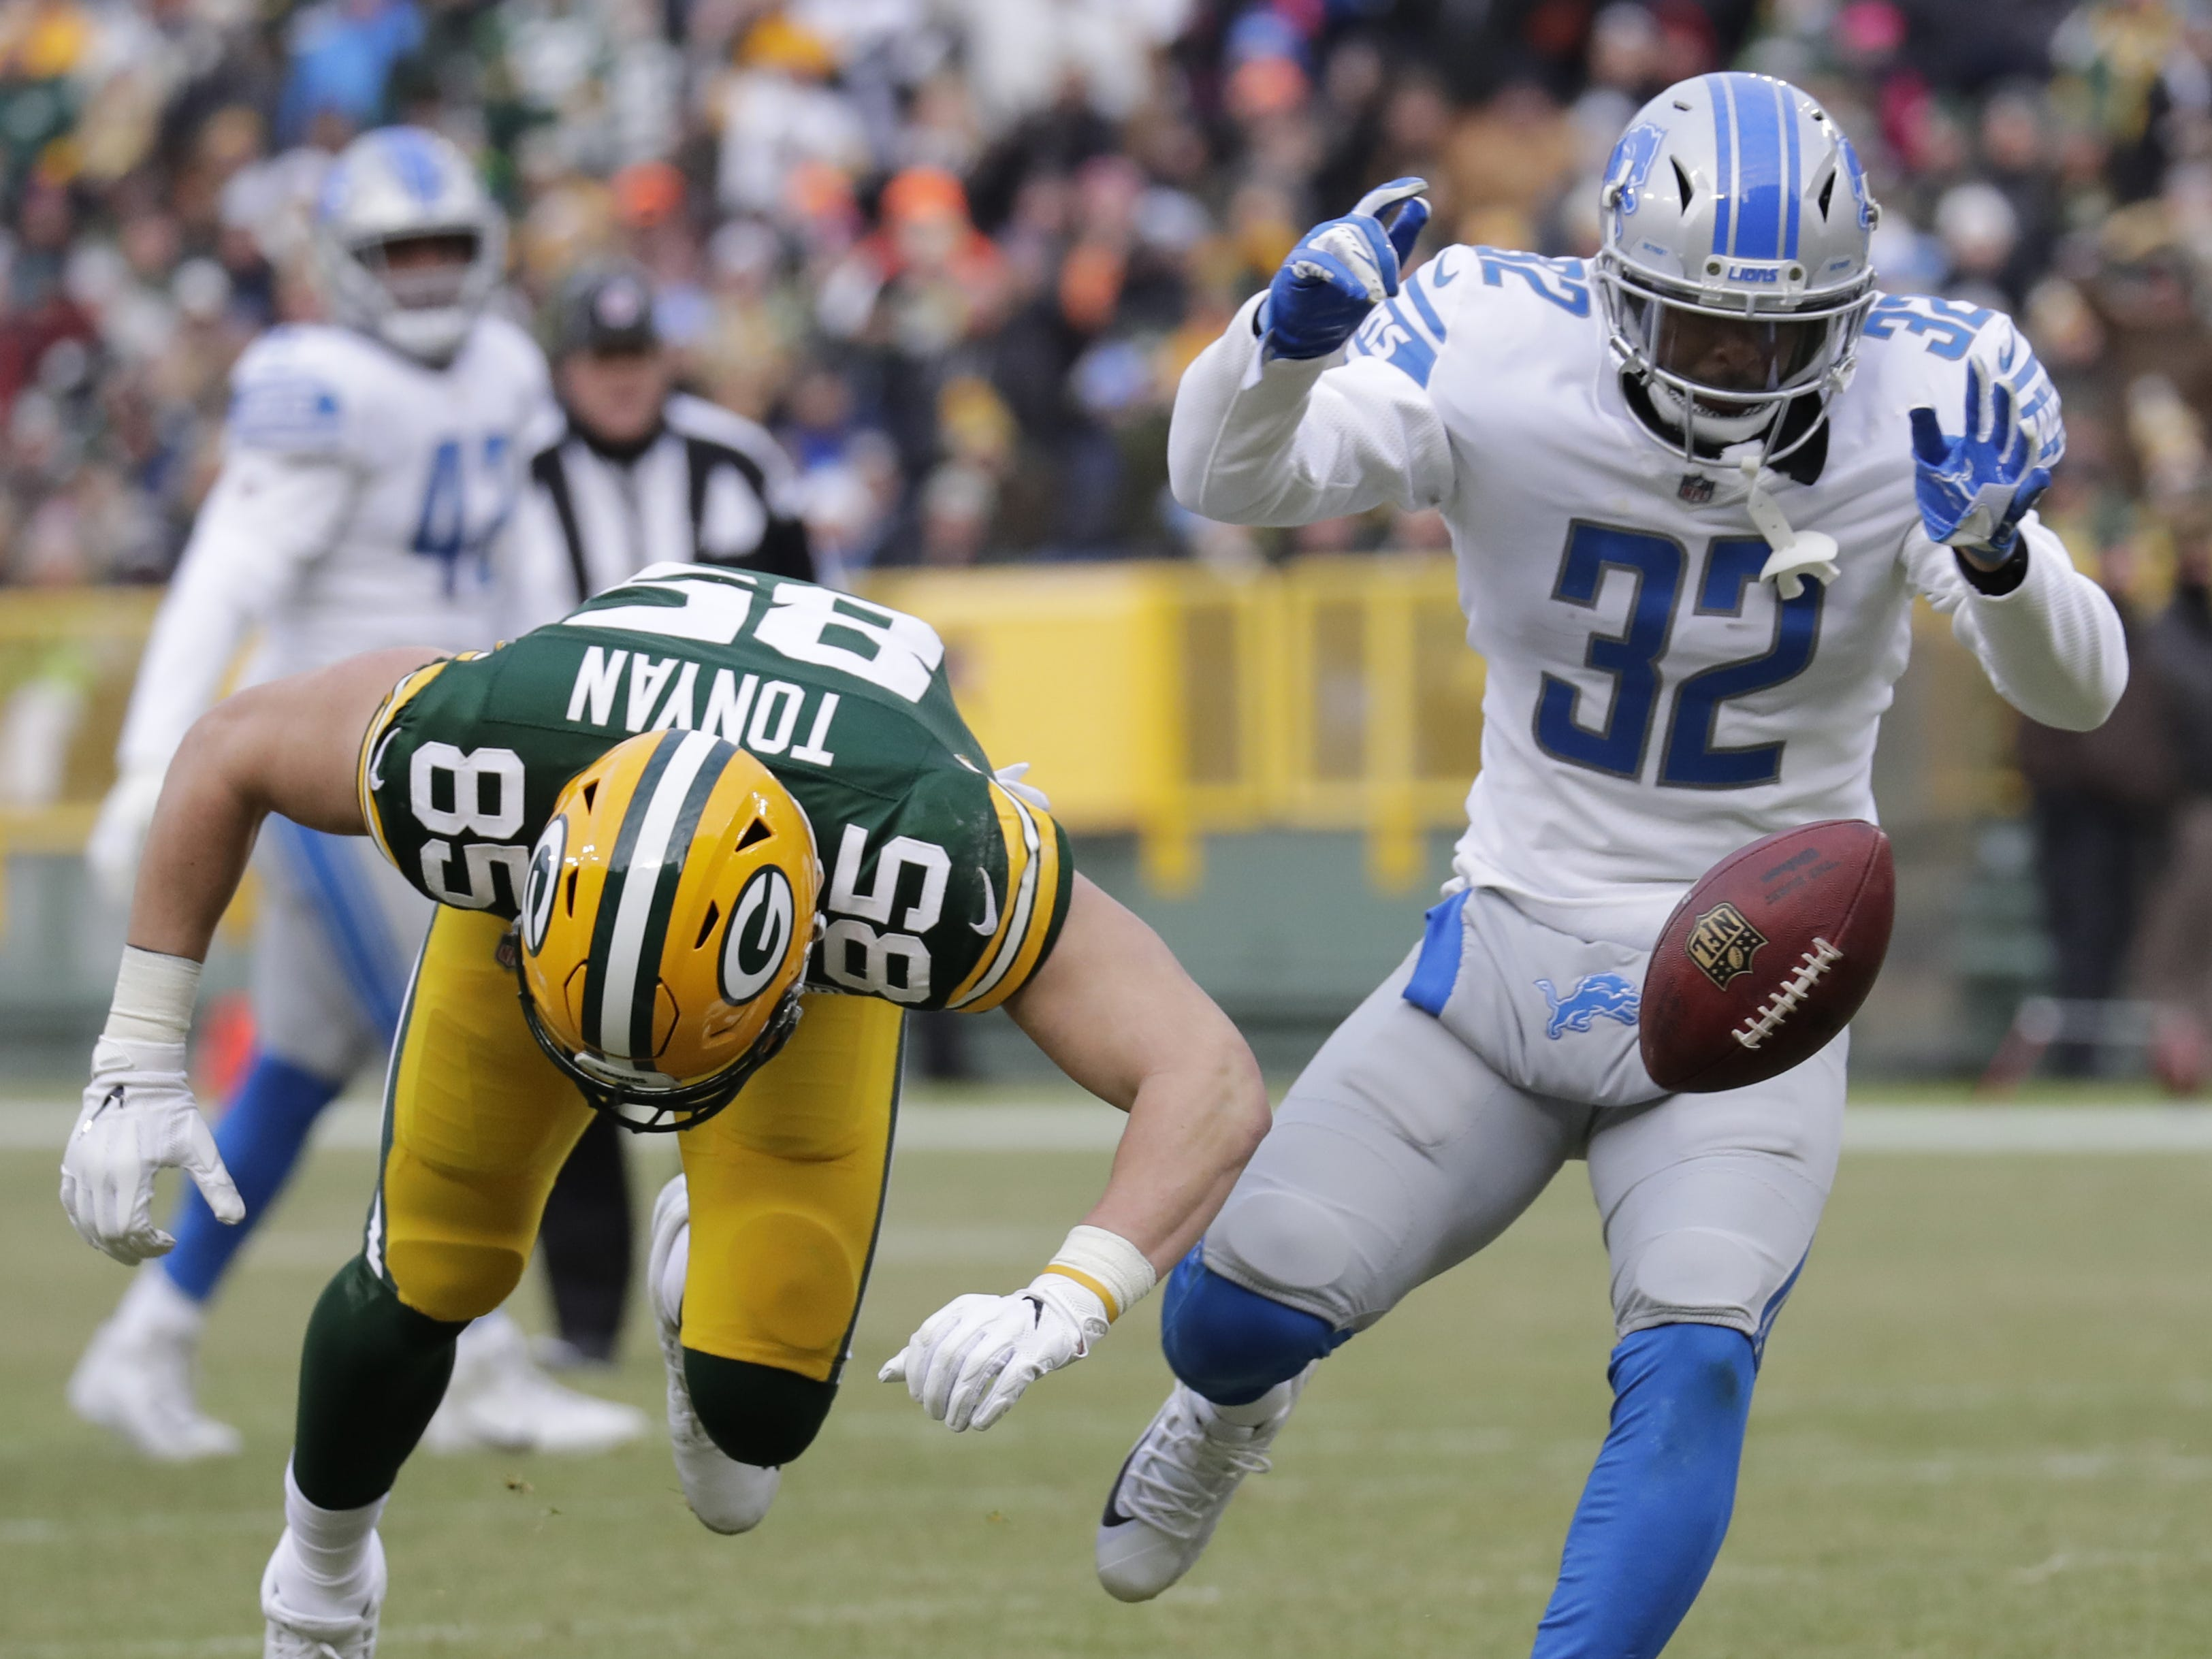 Green Bay Packers tight end Robert Tonyan (85) drops a pass against Detroit Lions defensive back Tavon Wilson (32) in the third quarter Sunday, December 30, 2018, at Lambeau Field in Green Bay, Wis.  Dan Powers/USA TODAY NETWORK-Wisconsin